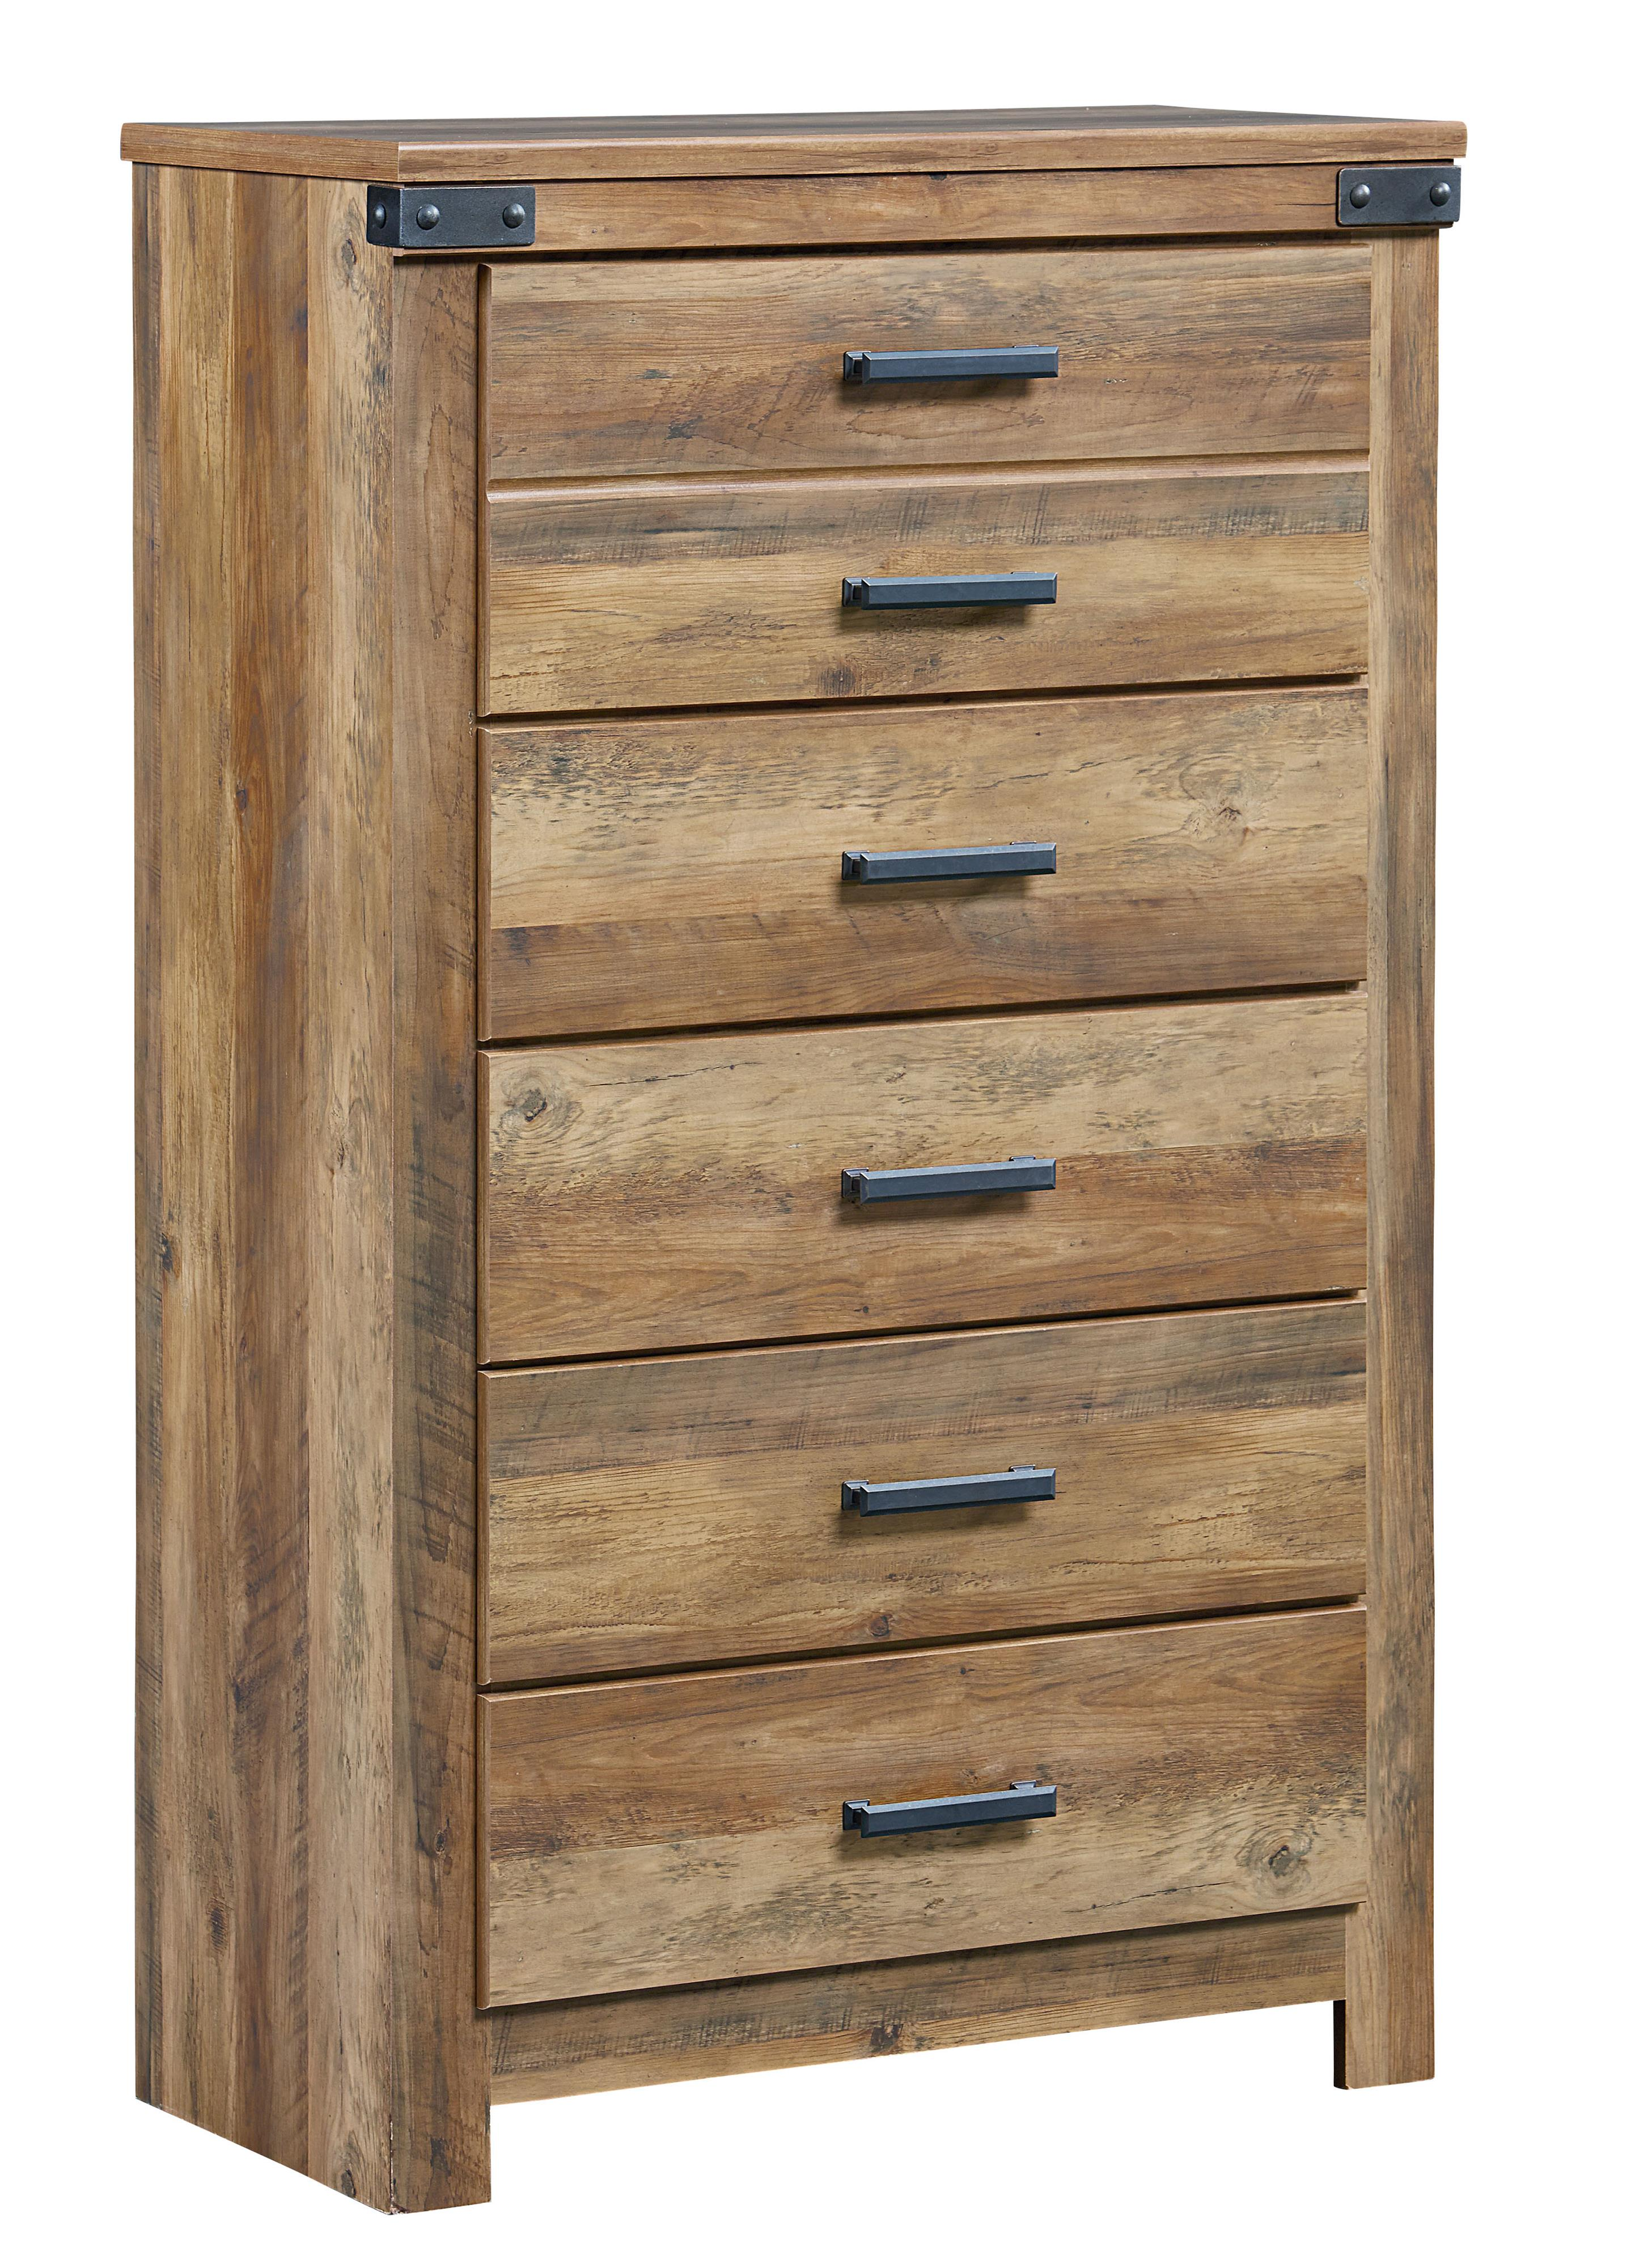 Standard Furniture Montana Chest of Drawers                 - Item Number: 52455